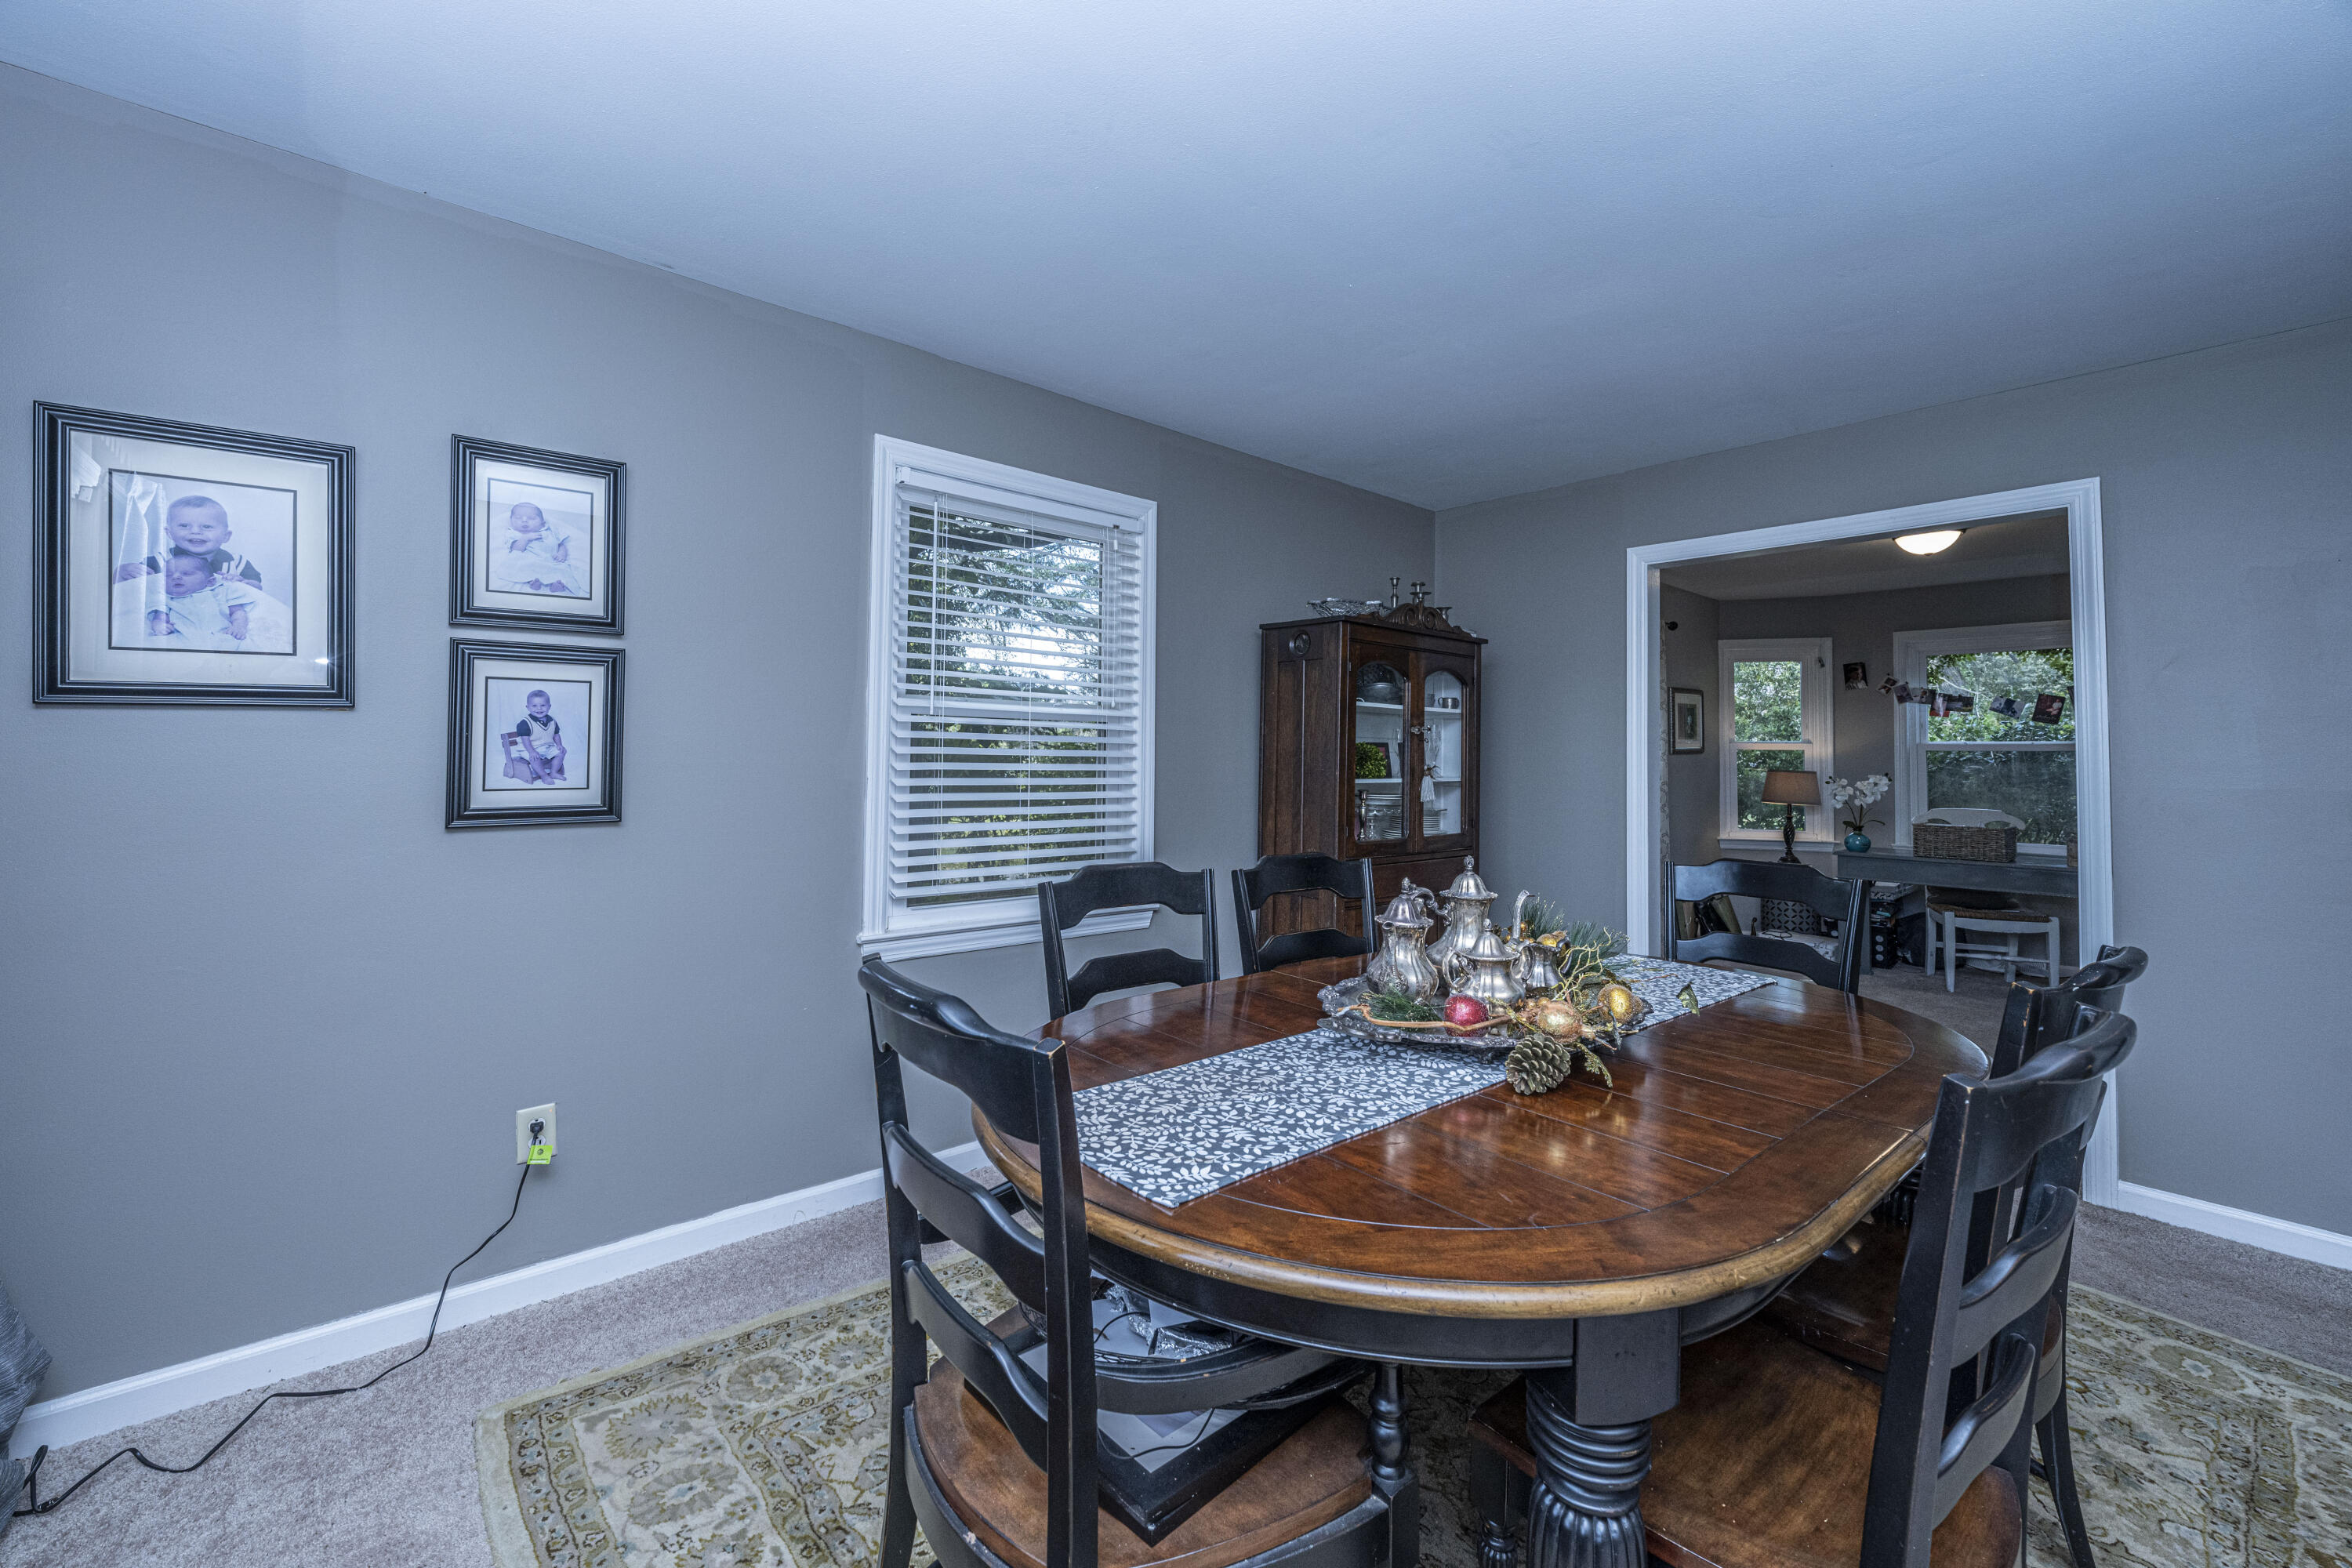 Stiles Point Homes For Sale - 775 Sparrow, Charleston, SC - 21